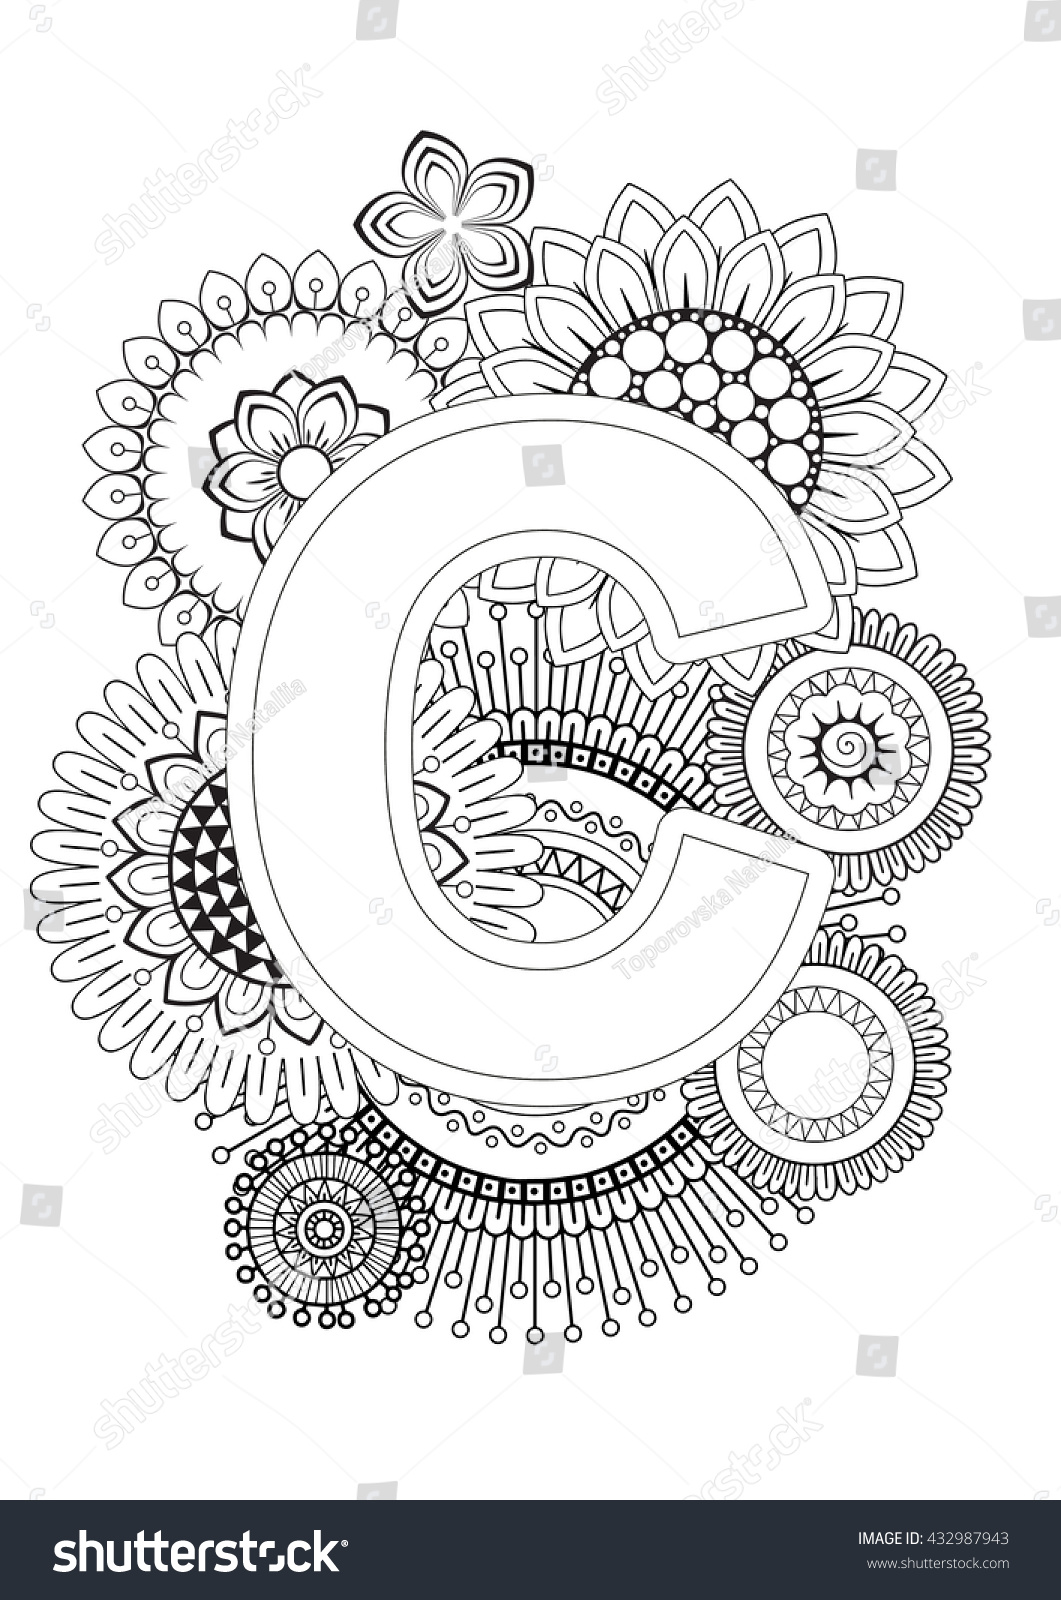 Doodle Floral Letters Coloring Book For Adult Mandala And Sunflower ABC Isolated